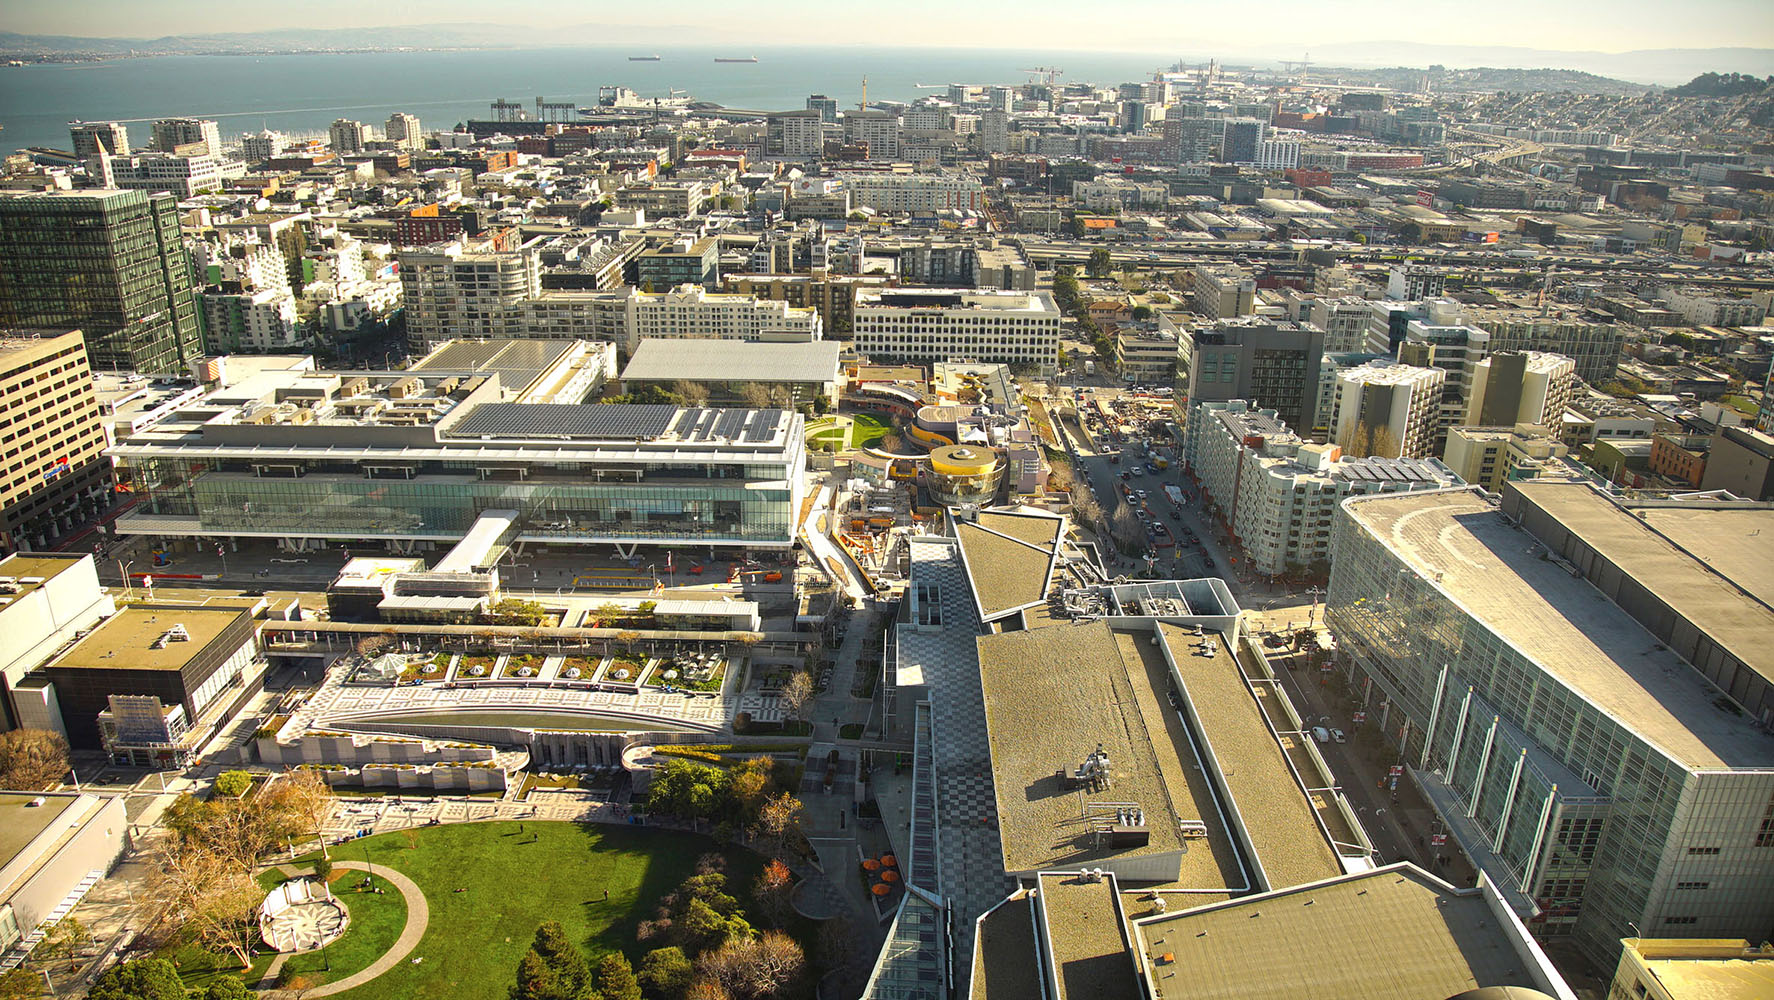 Aerial view of the Moscone Center and its solar photovoltaic array.